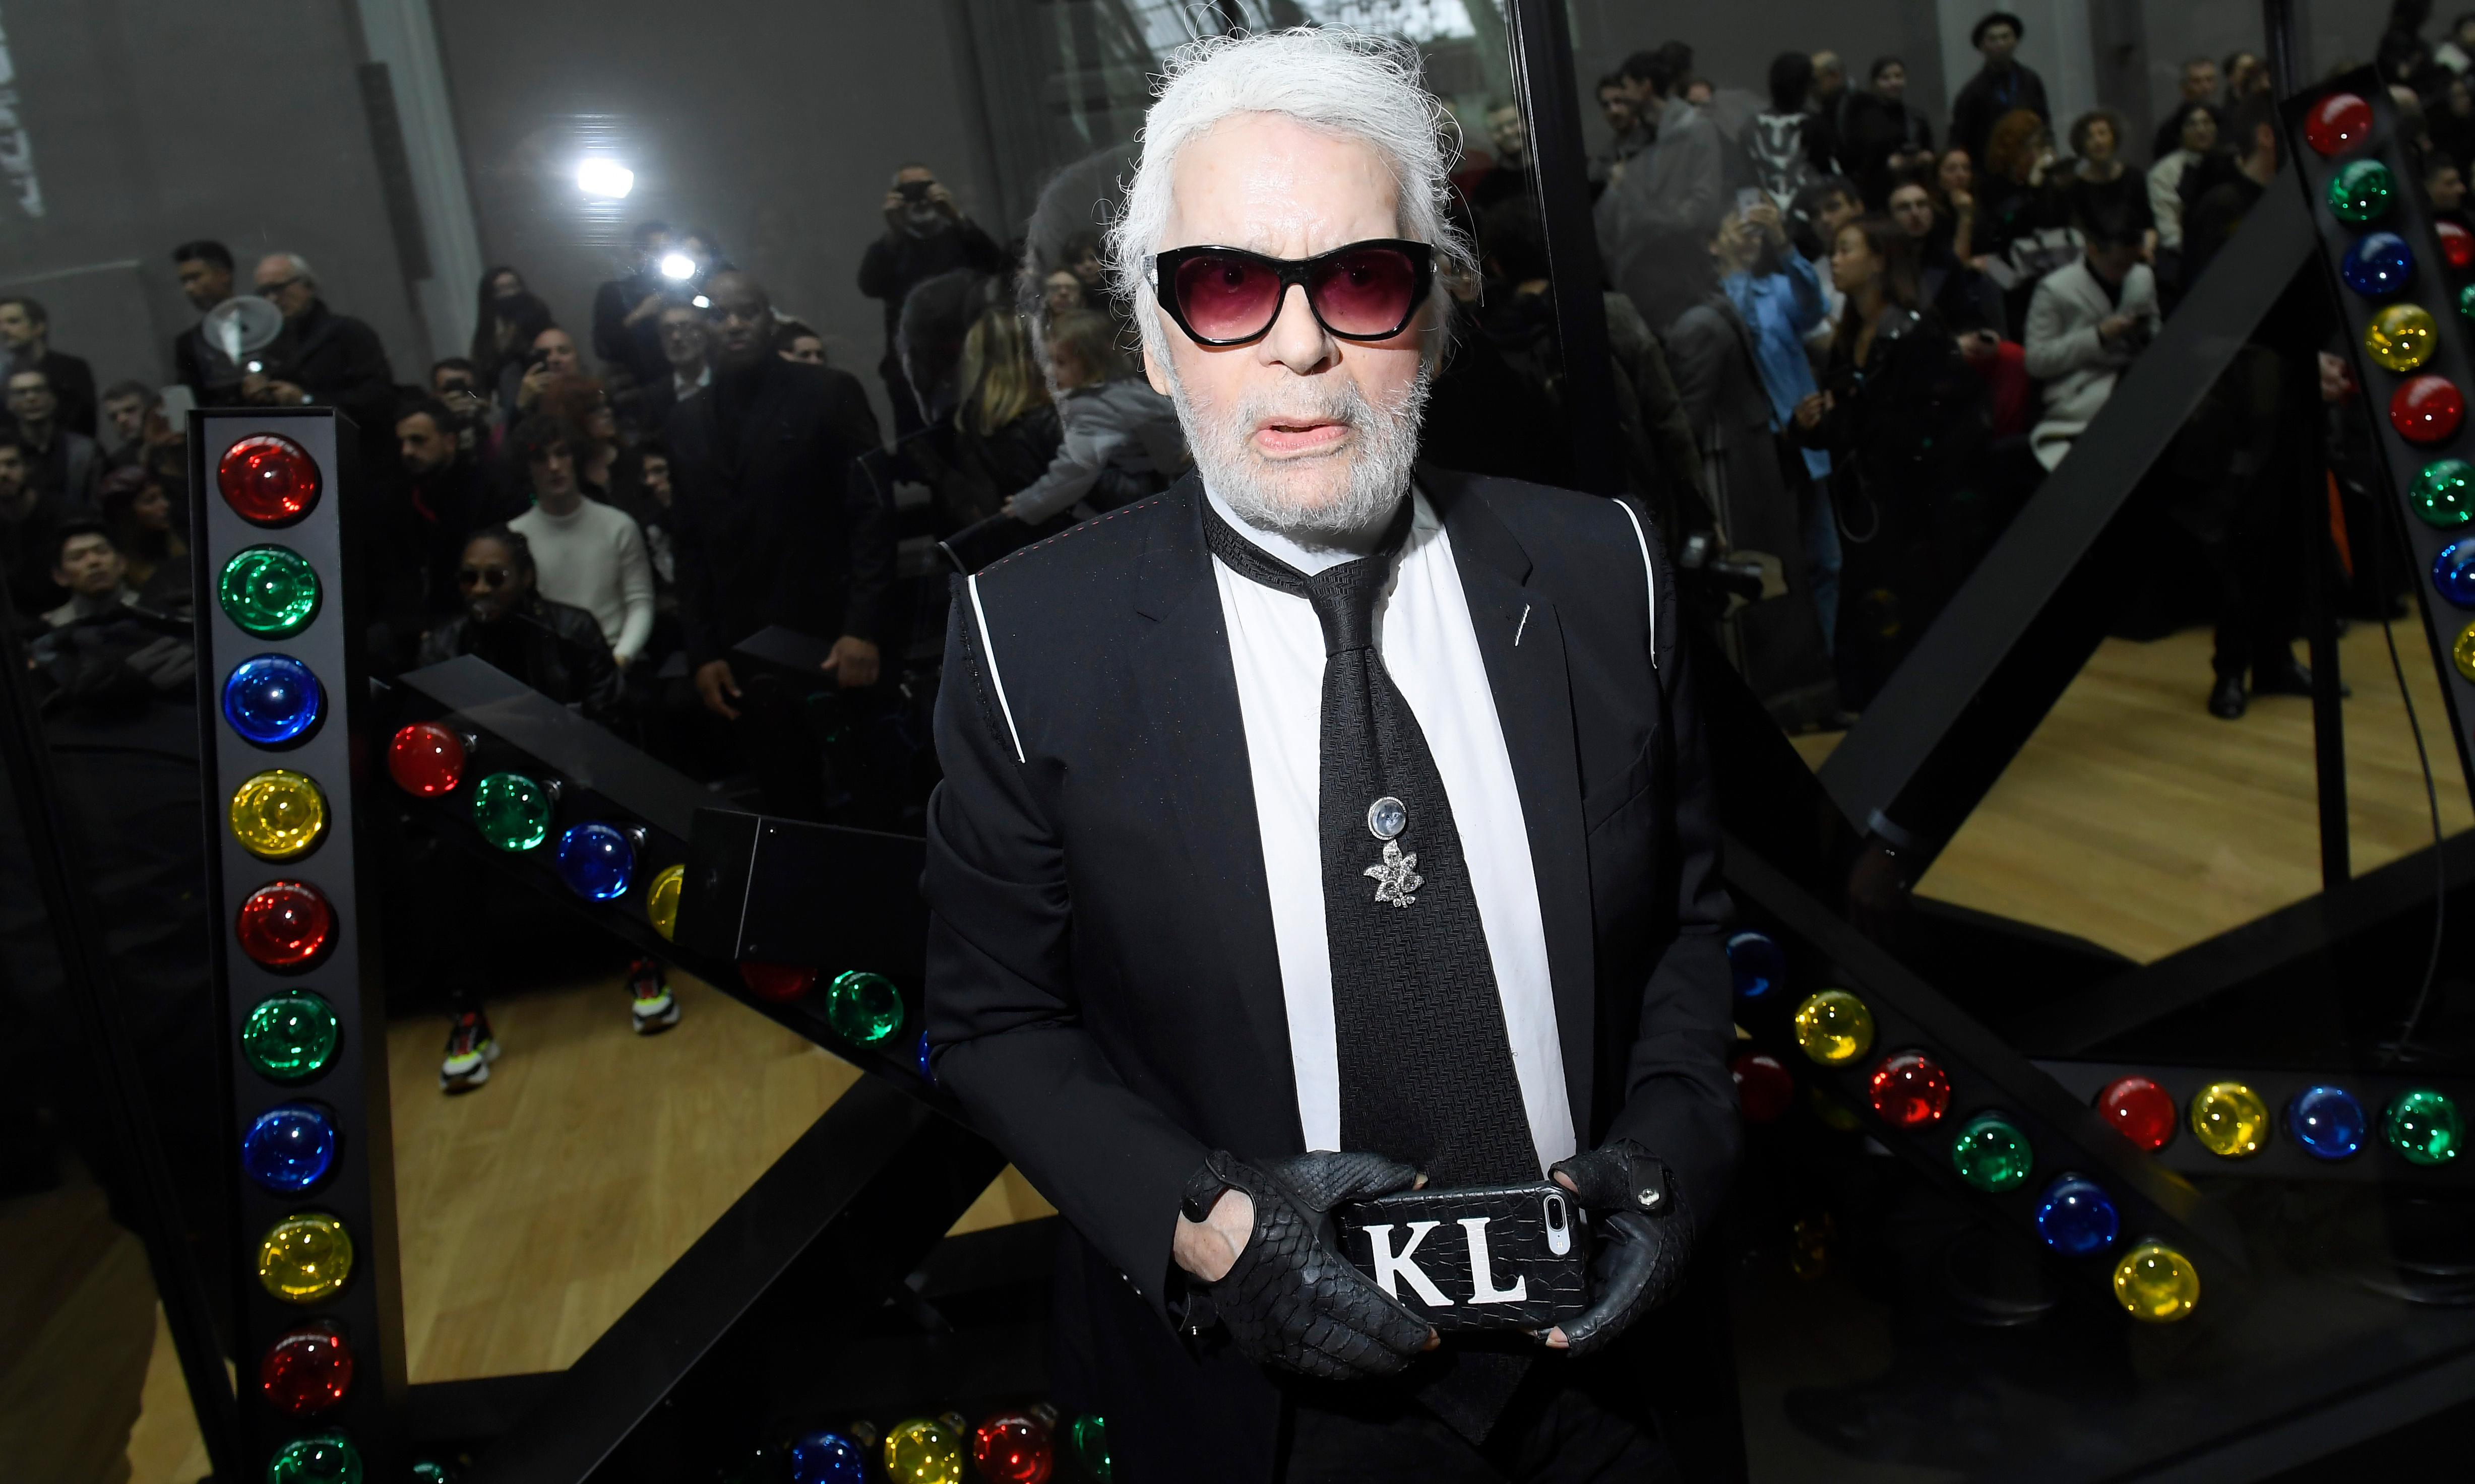 Karl Lagerfeld, artistic director at Chanel, dies aged 85